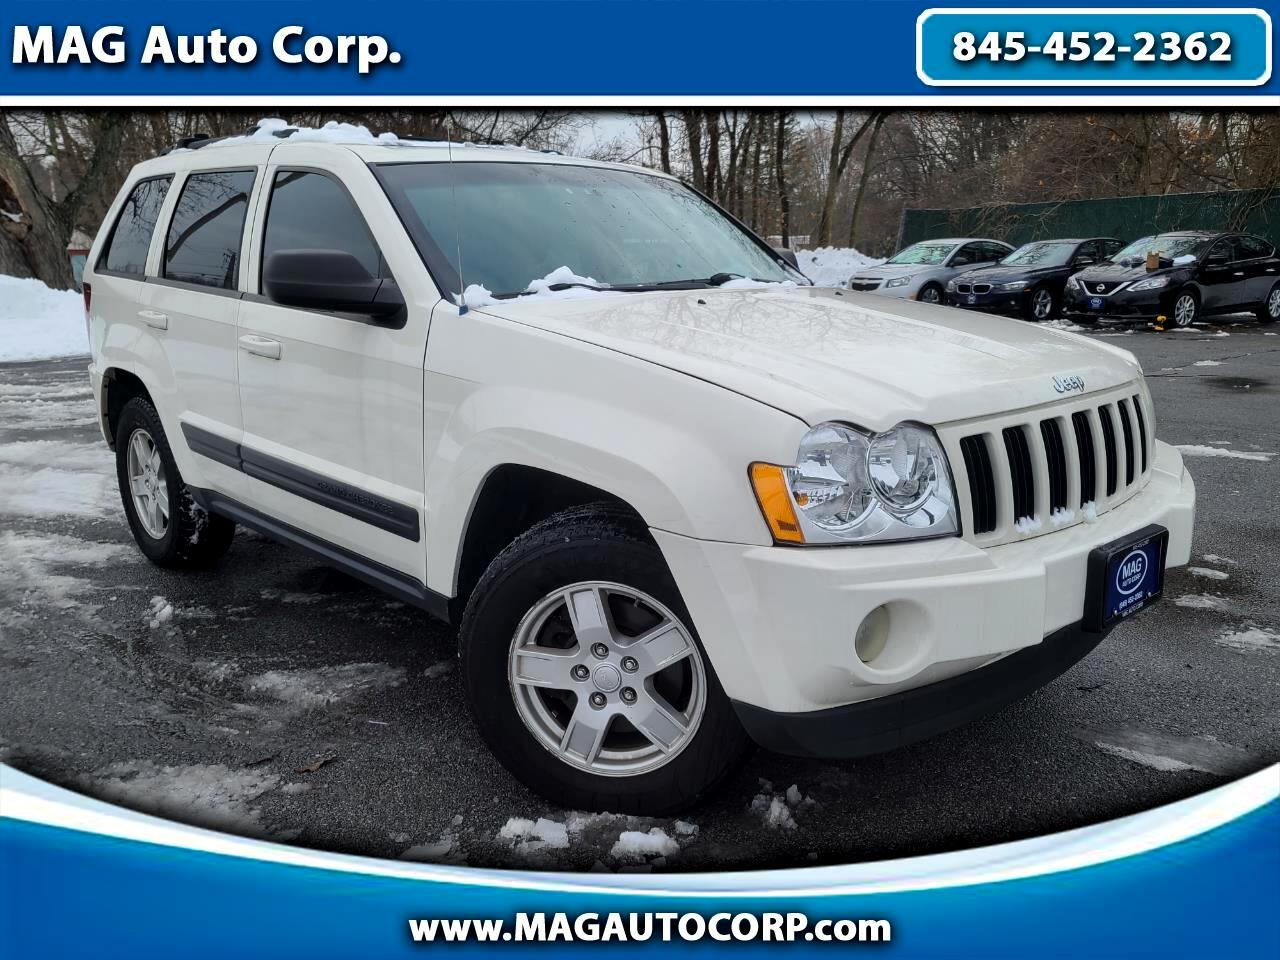 Used 2006 Jeep Grand Cherokee Laredo 4wd For Sale In Poughkeepsie Ny 12603 Mag Auto Corp